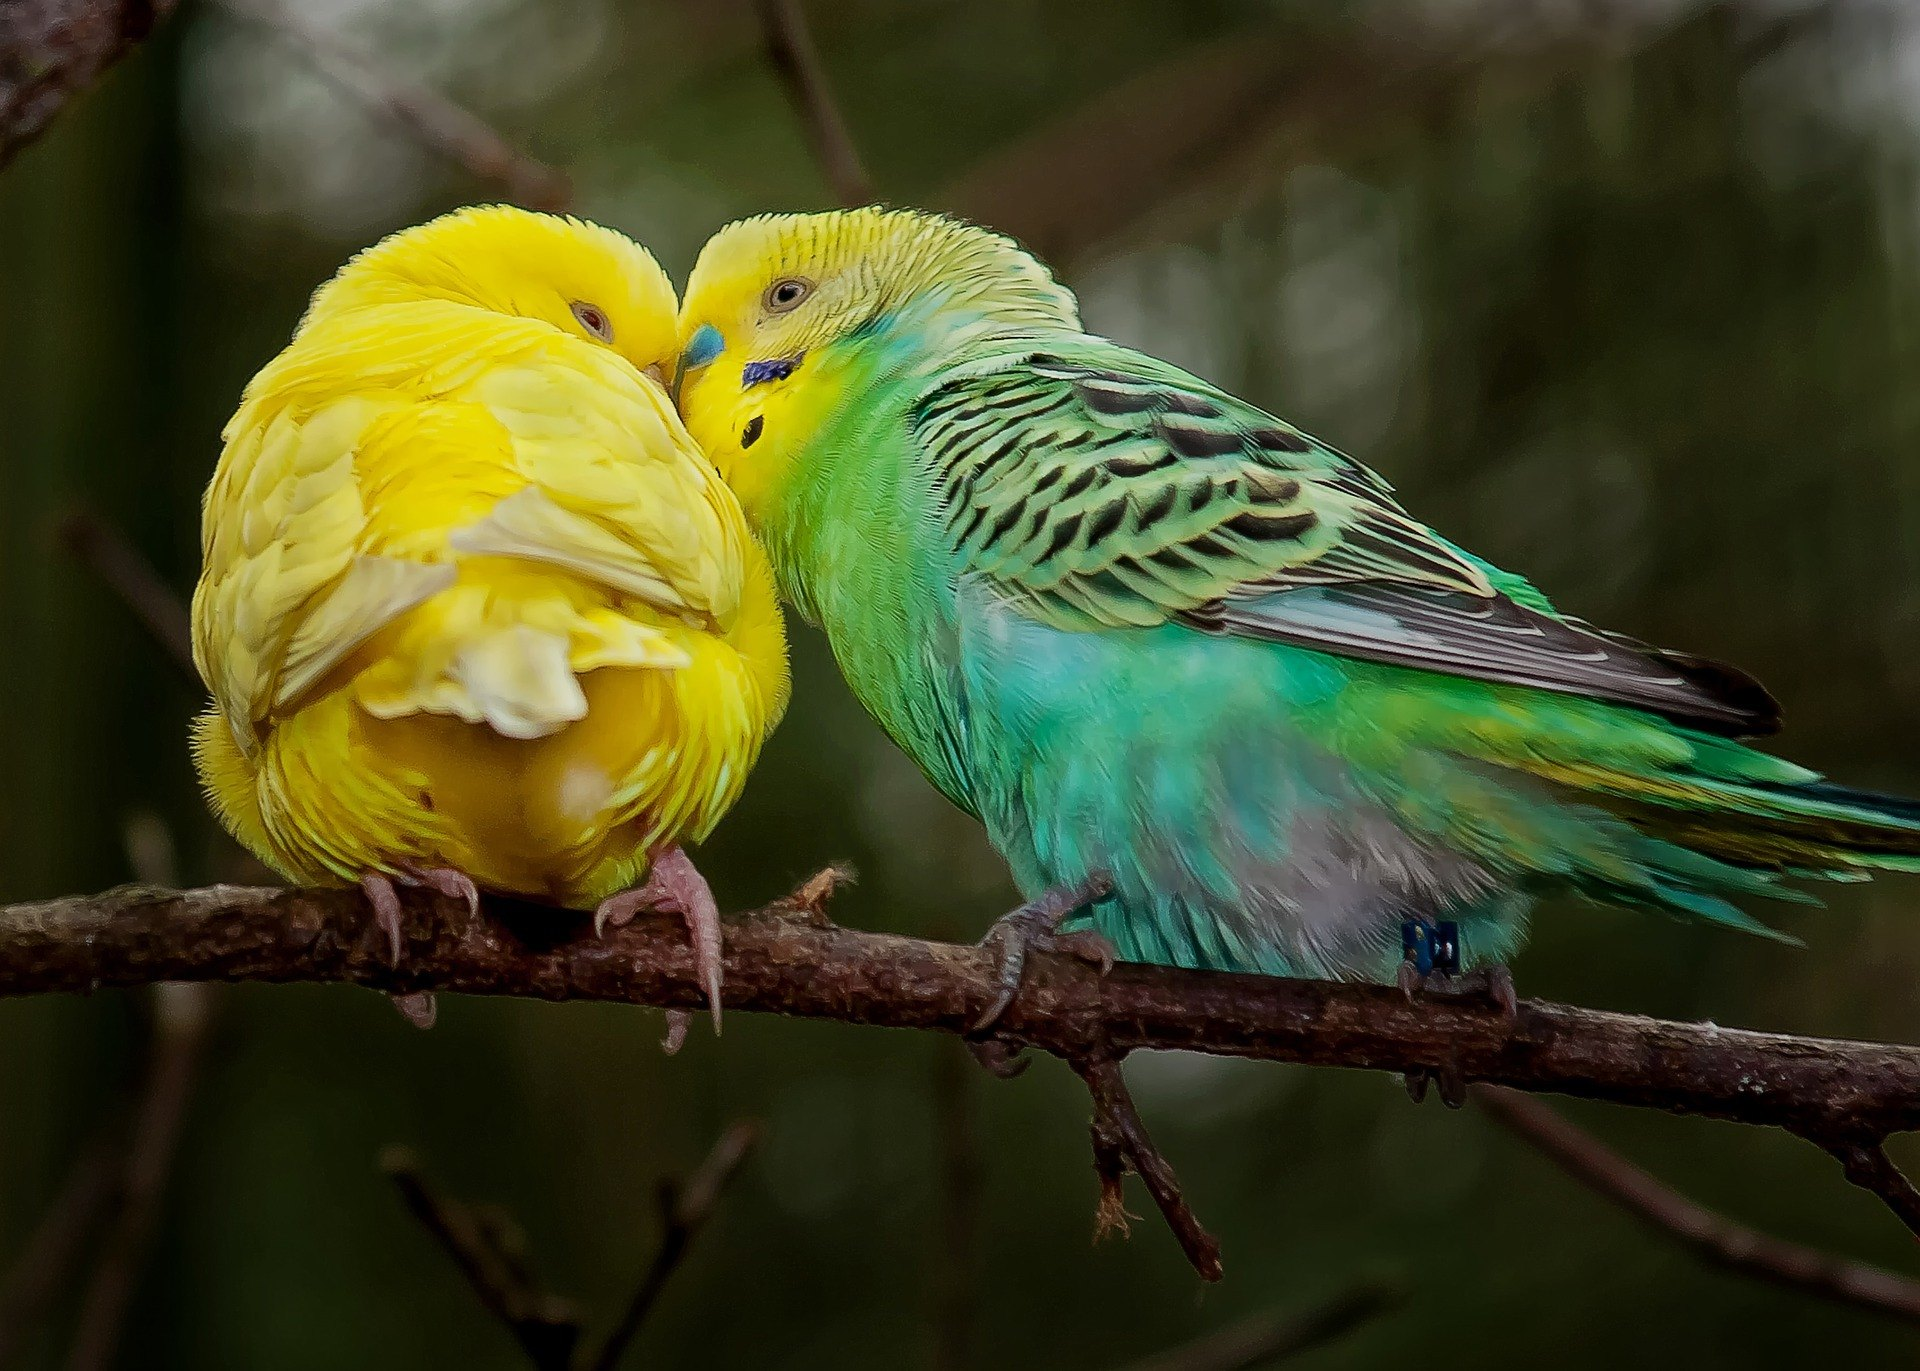 singing may have developed in monogamous species